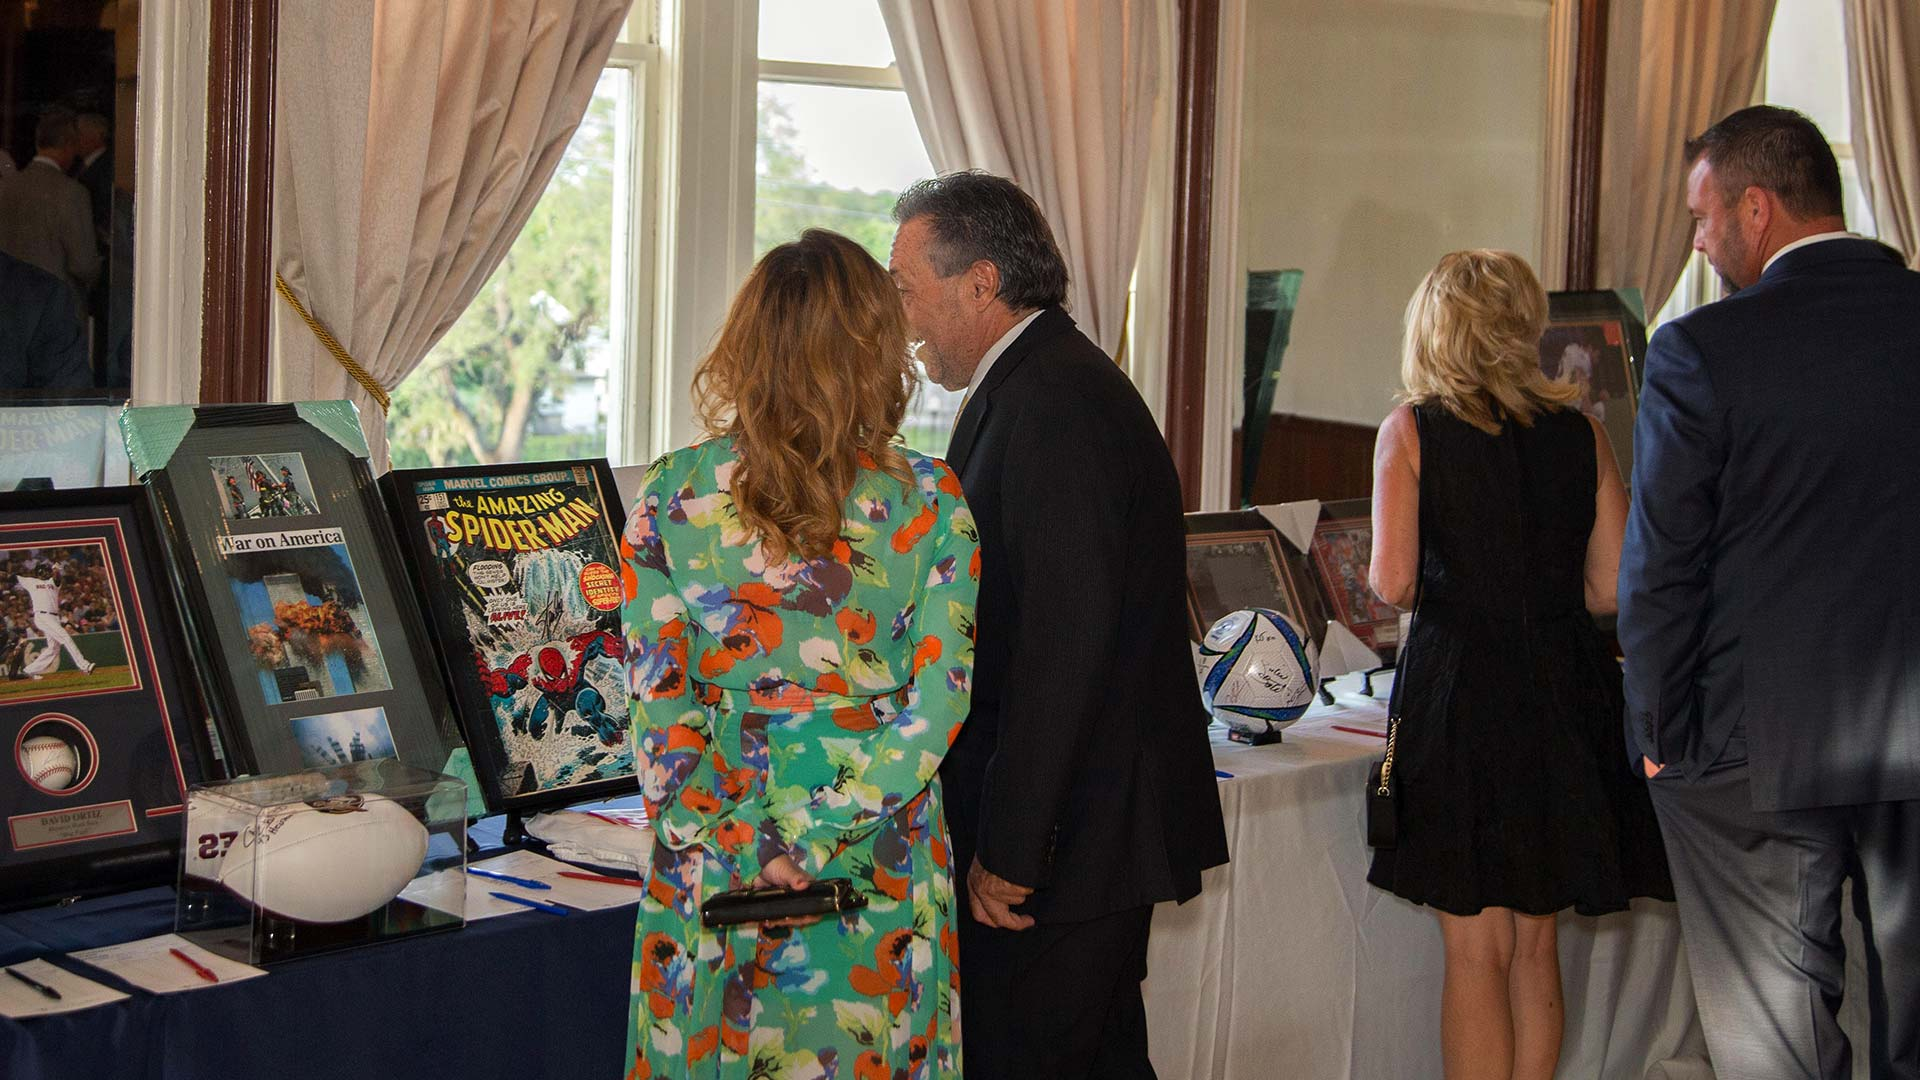 Two people looking at items at an event run by SociallyFunded